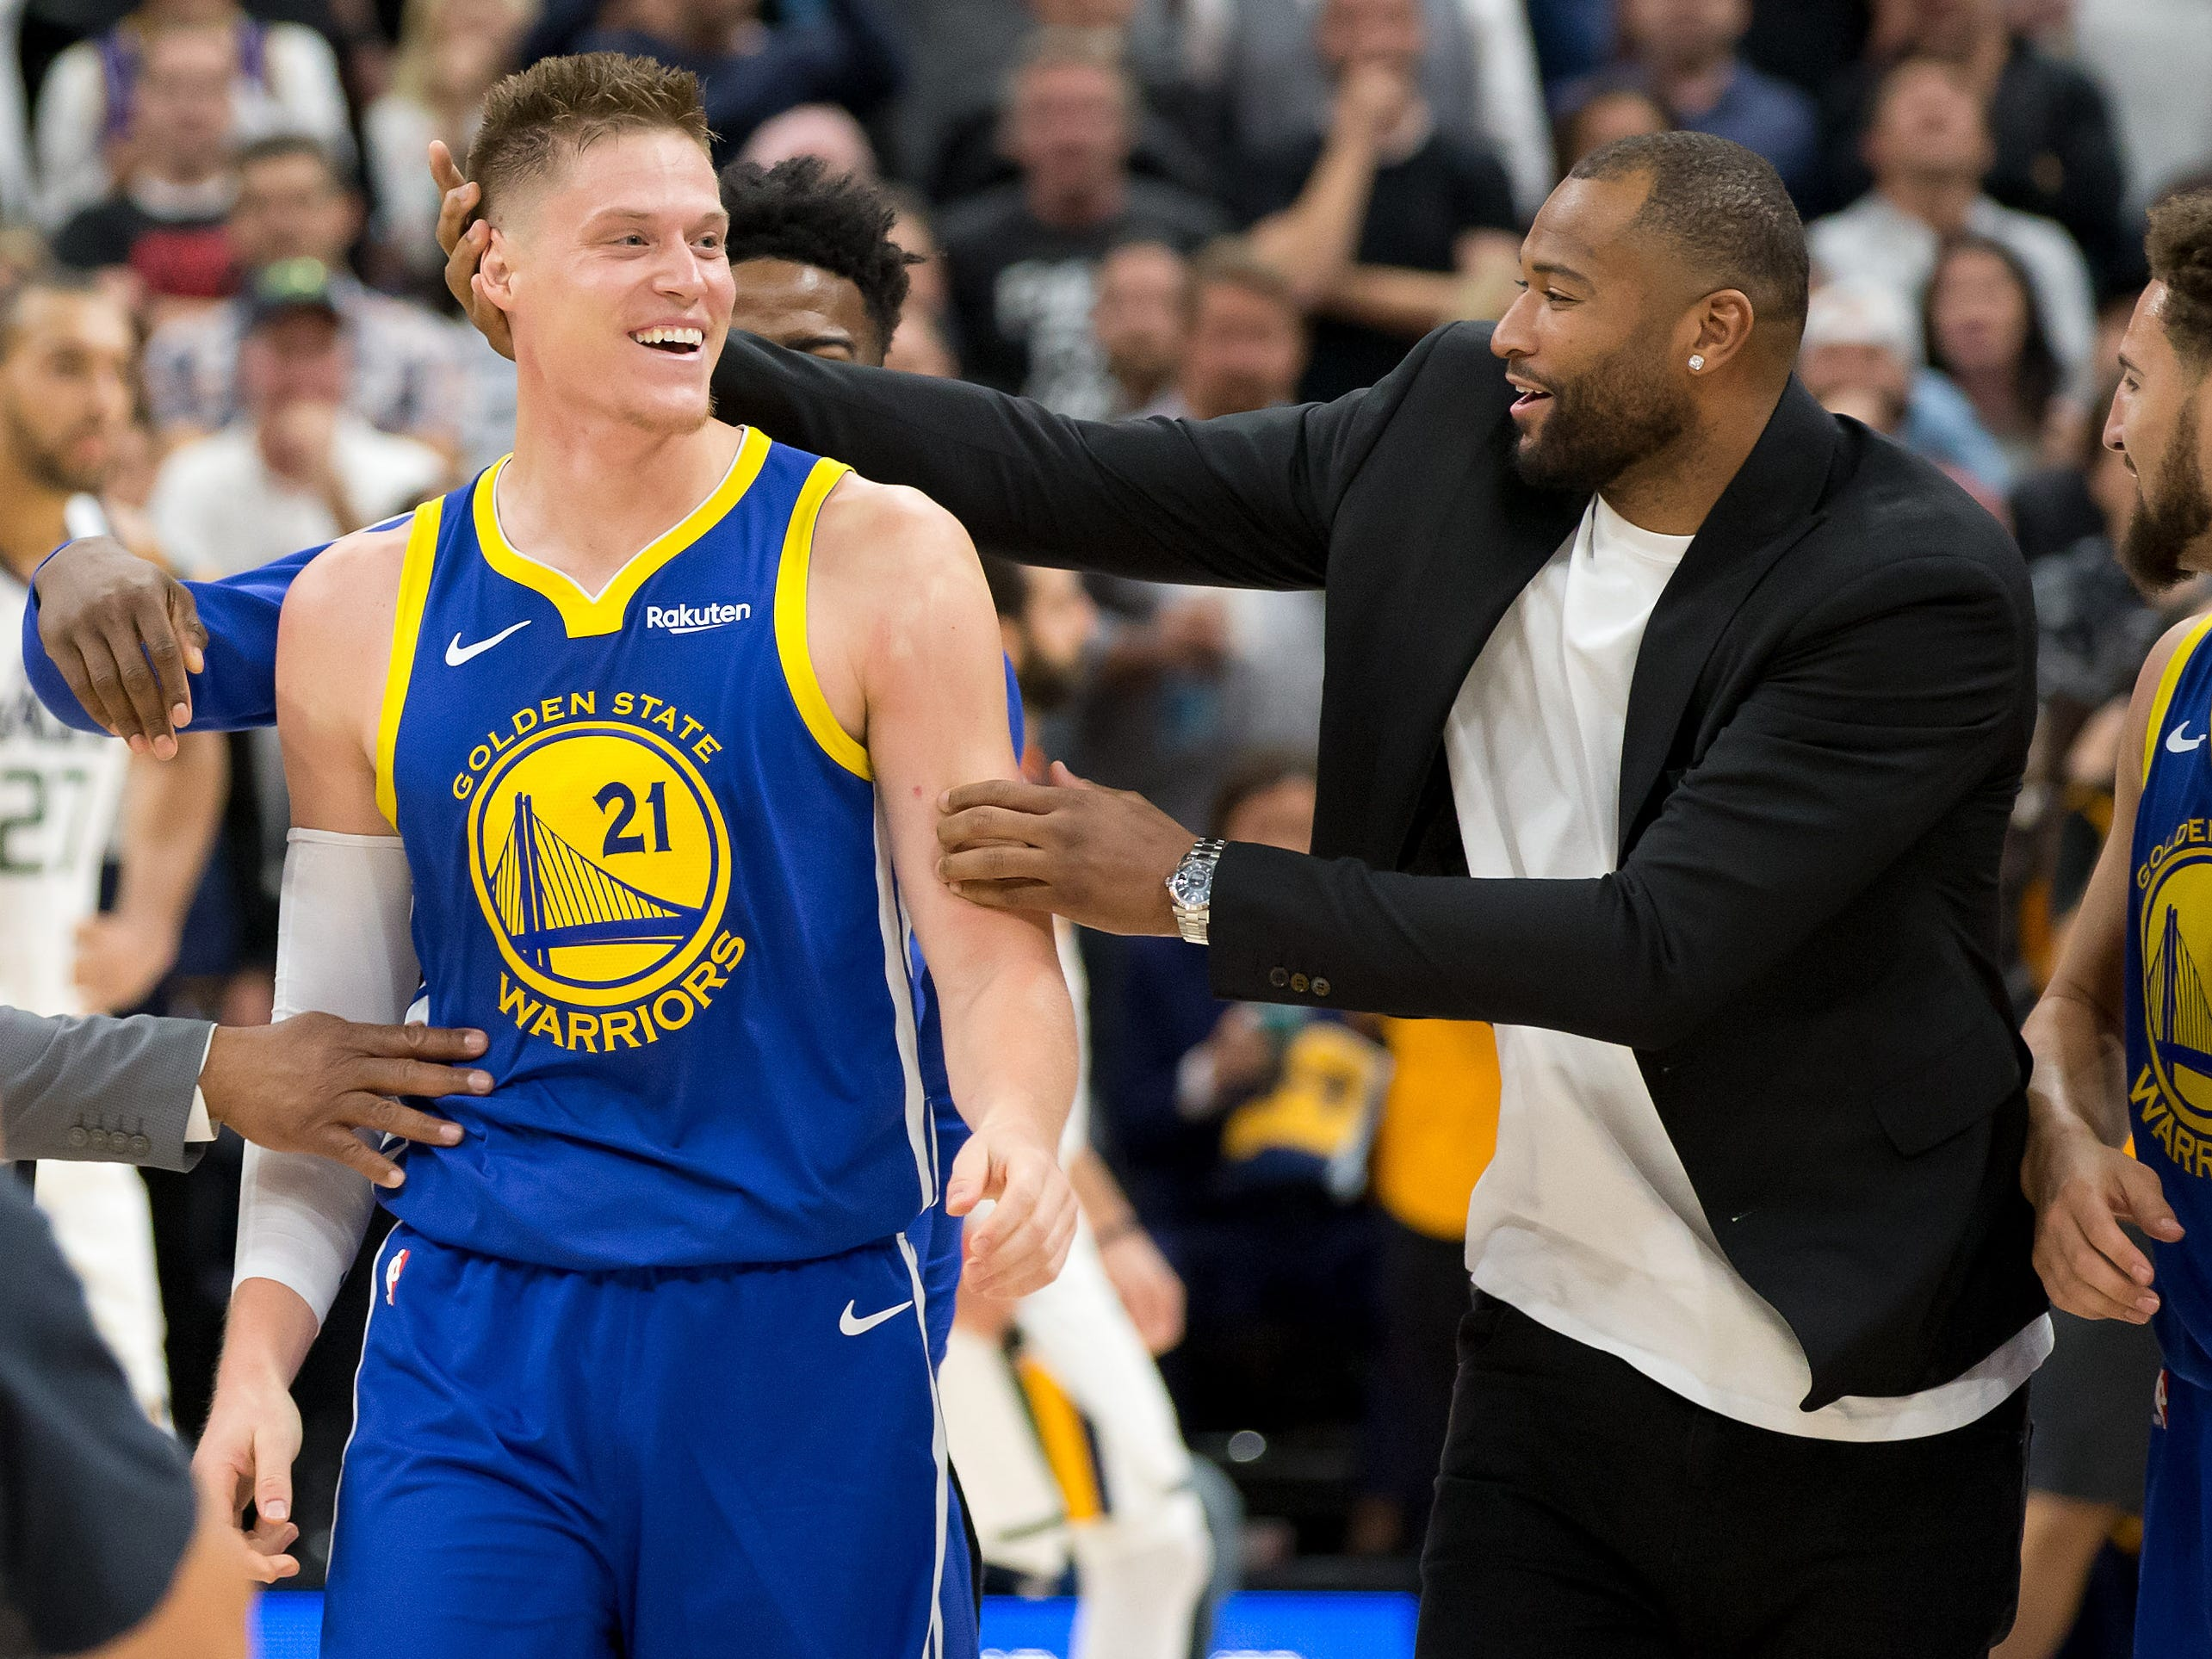 Oct. 19: Warriors forward Jonas Jerebko celebrates with injured center DeMarcus Cousins after his game-winning tip-in at the buzzer beat the Jazz in Salt Lake City.